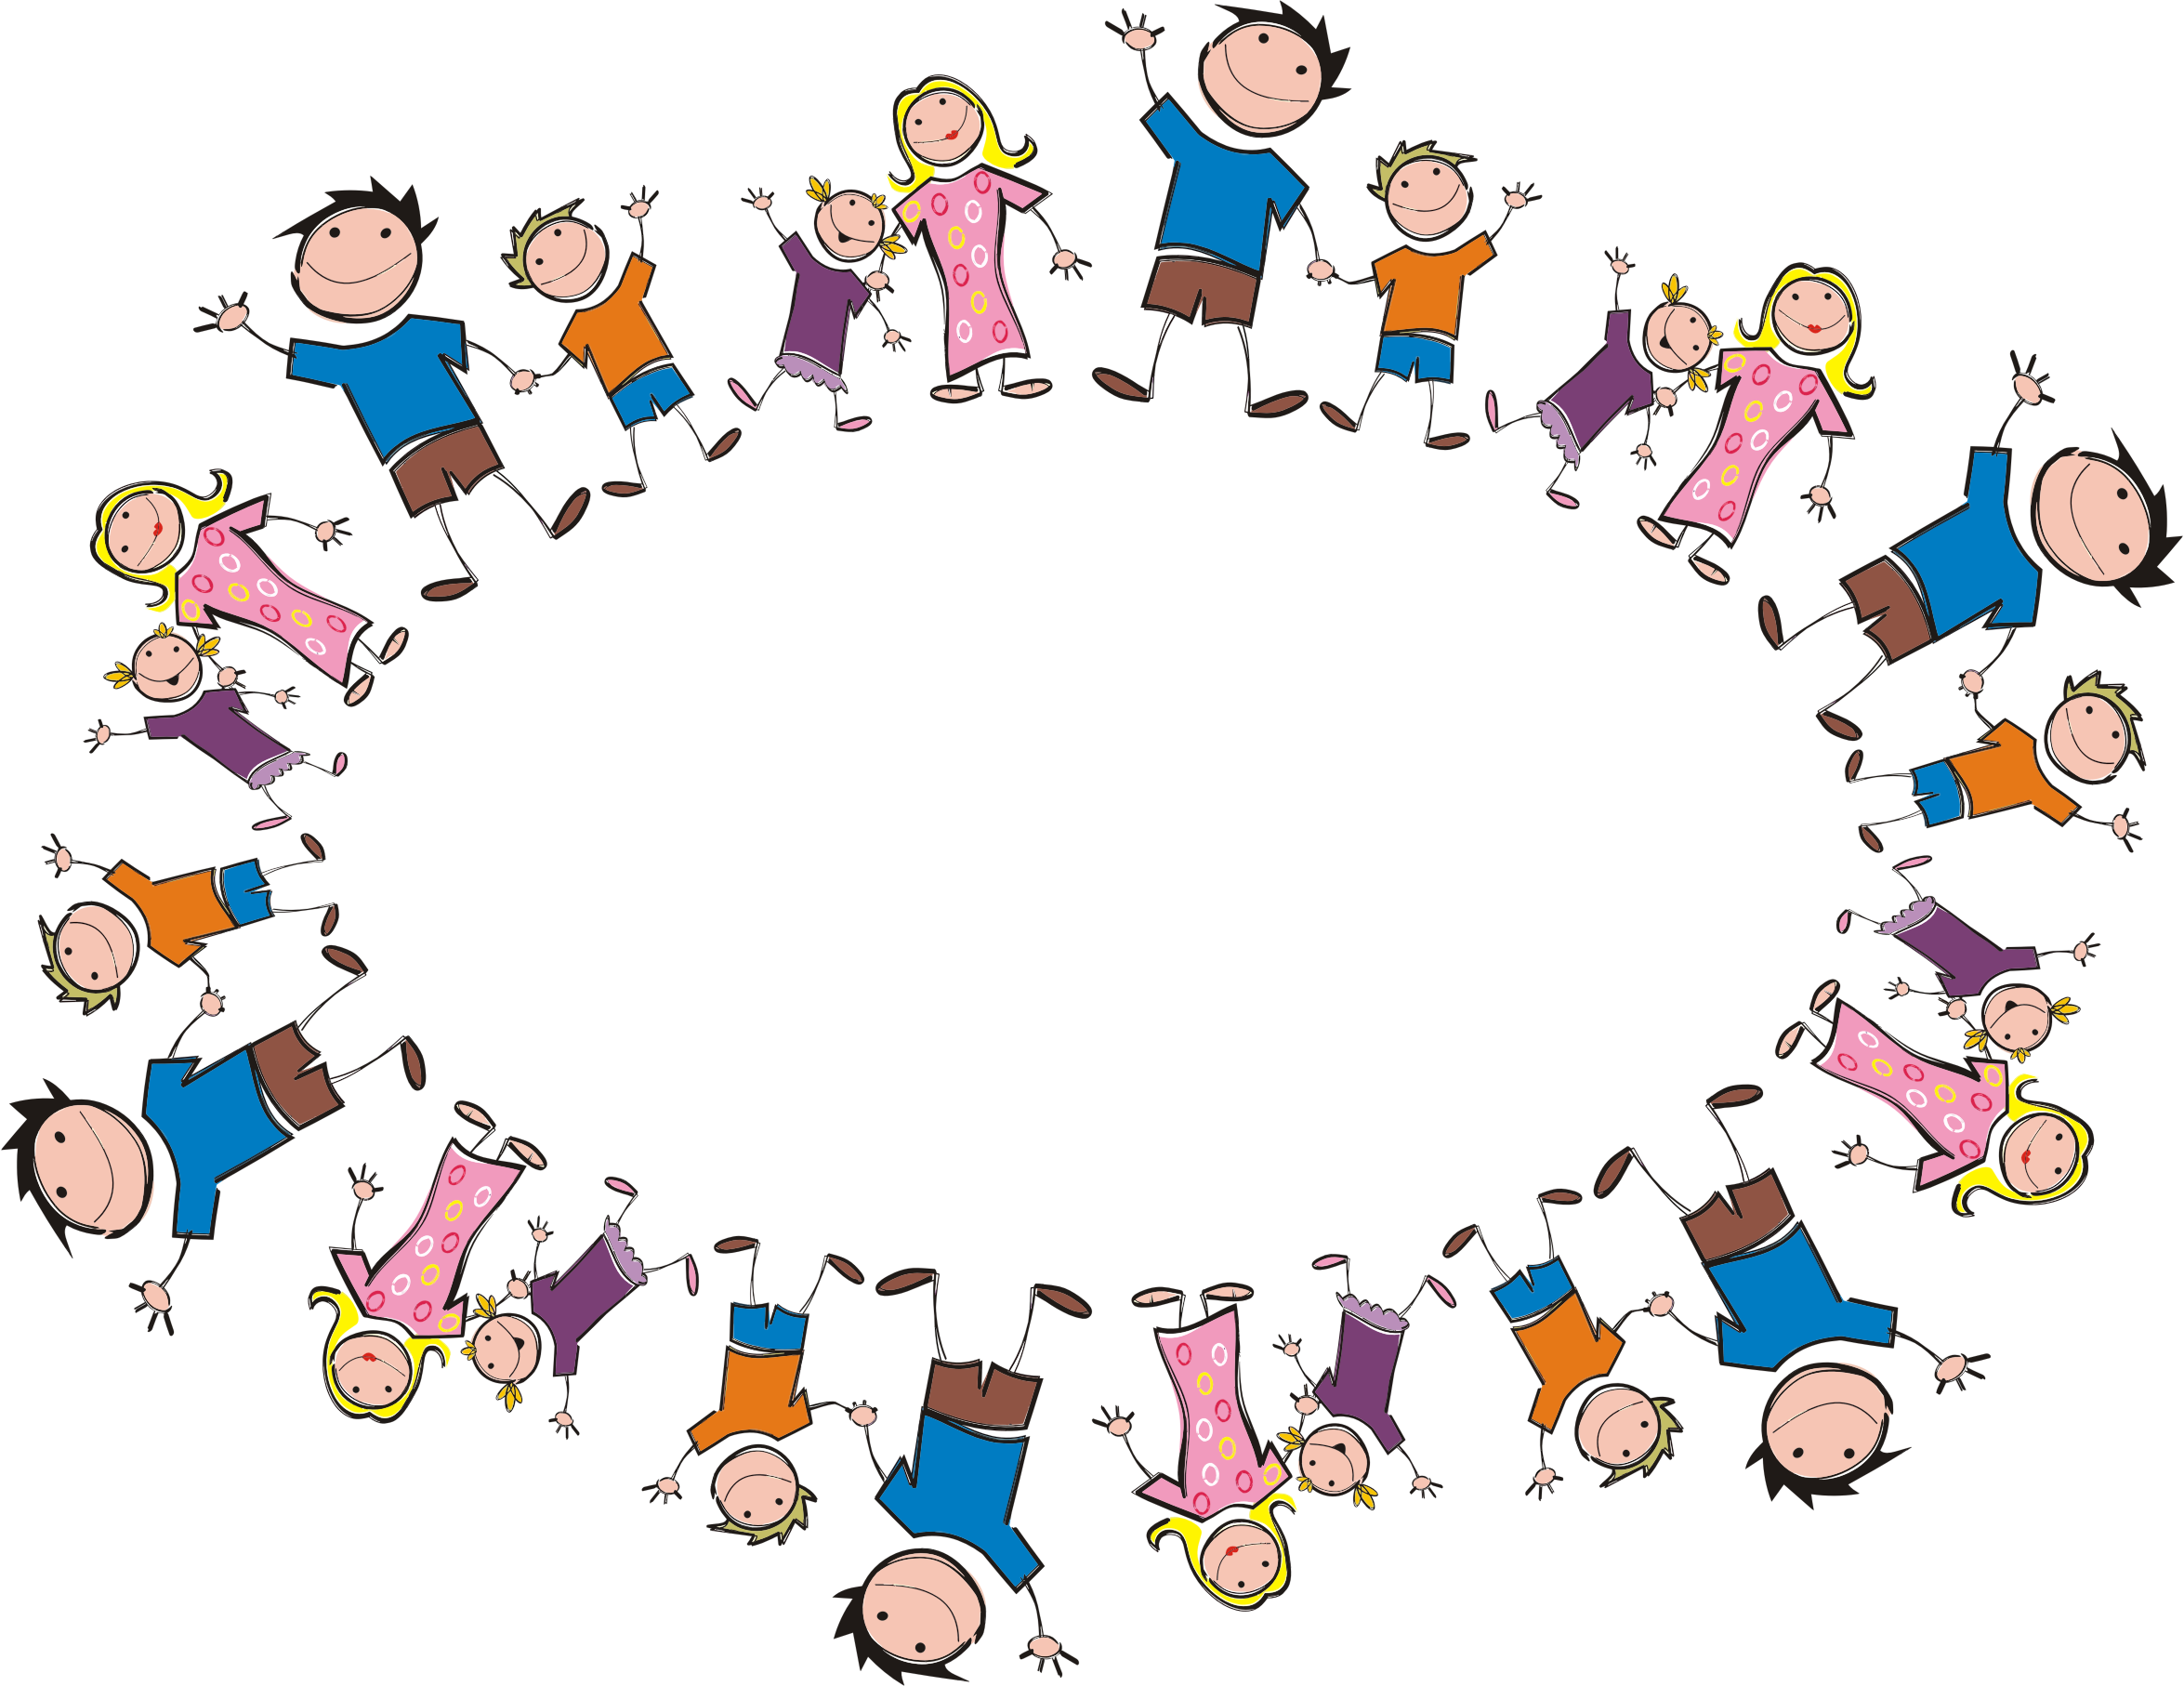 Stick figure ellipse icons. Clipart family togetherness